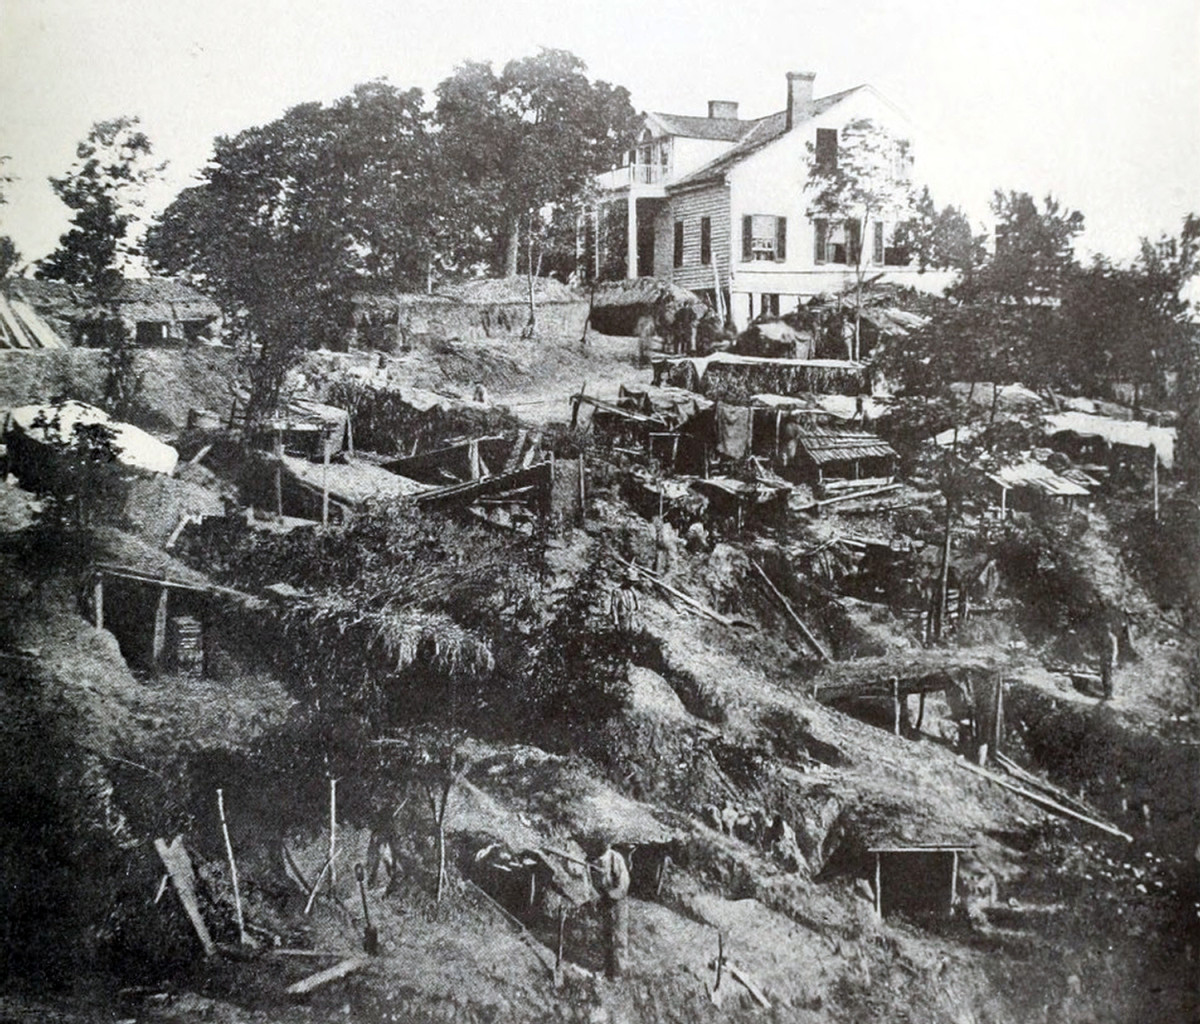 The Shirley family's home, shown during the siege, was inside Union lines at Vicksburg. Removed from the dangerously exposed house, family members found shelter in a cave.